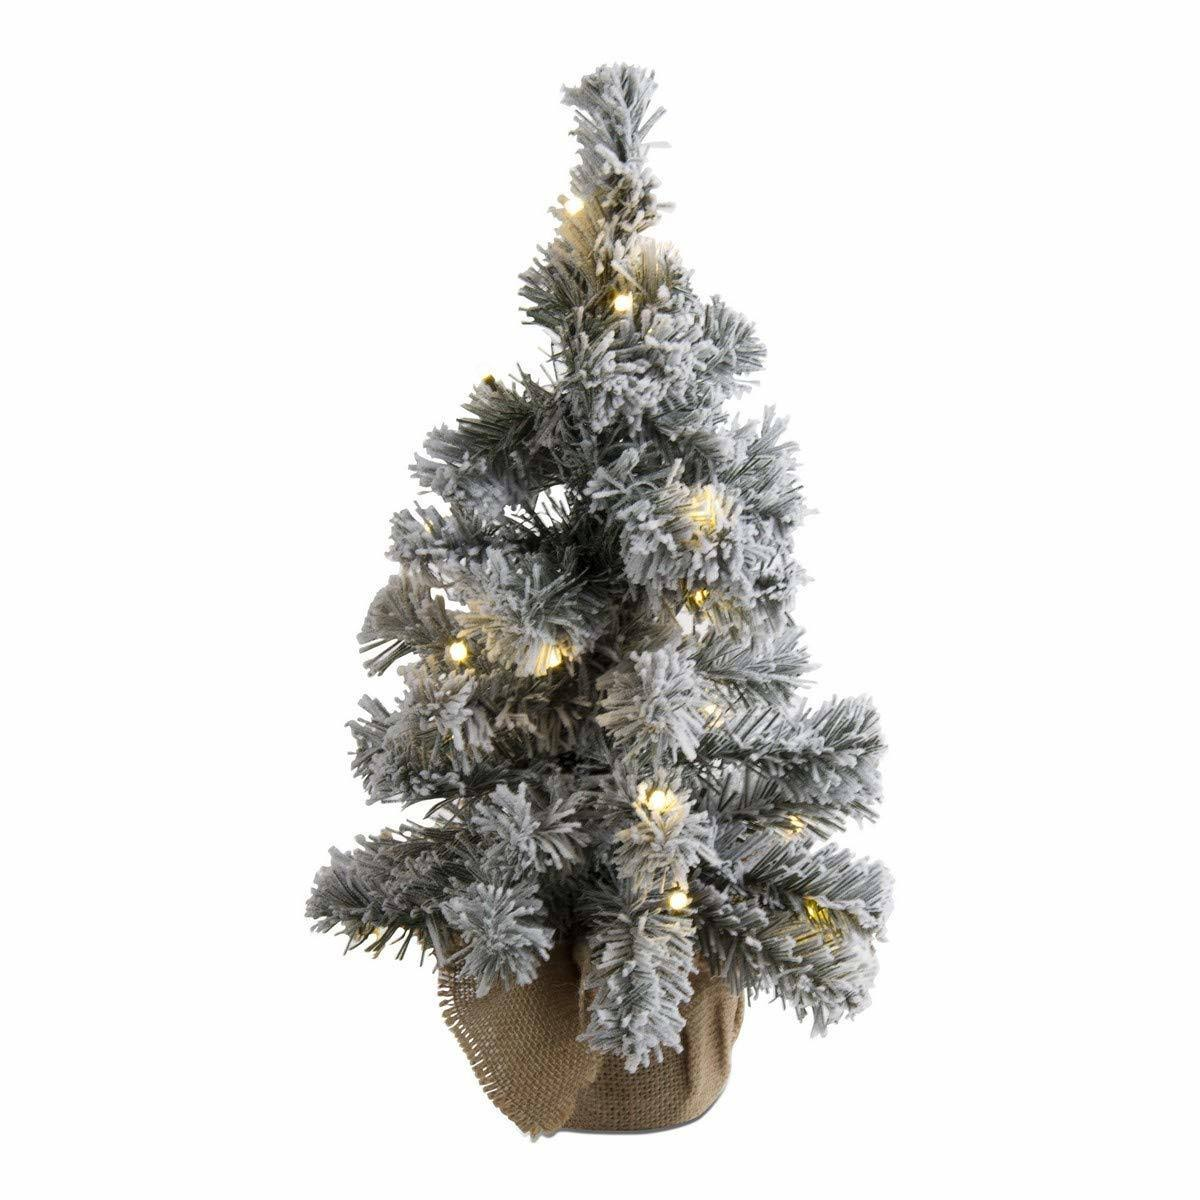 Tag Holiday Ornament Medium Snowy Evergreen LED Tree Décor One-Size